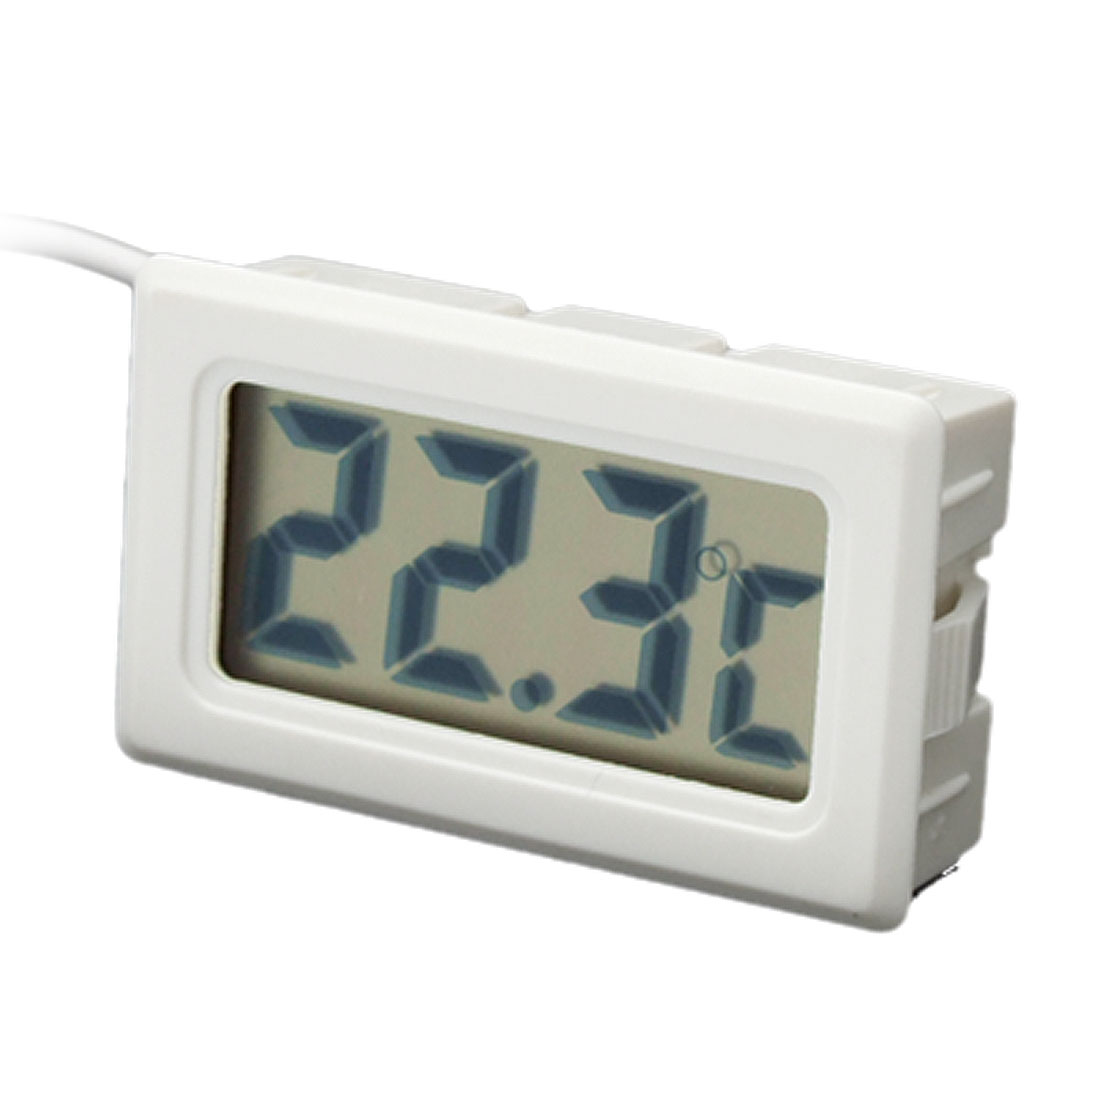 Super Mini LCD Refrigerator Freezer Fridge Digital Thermometer